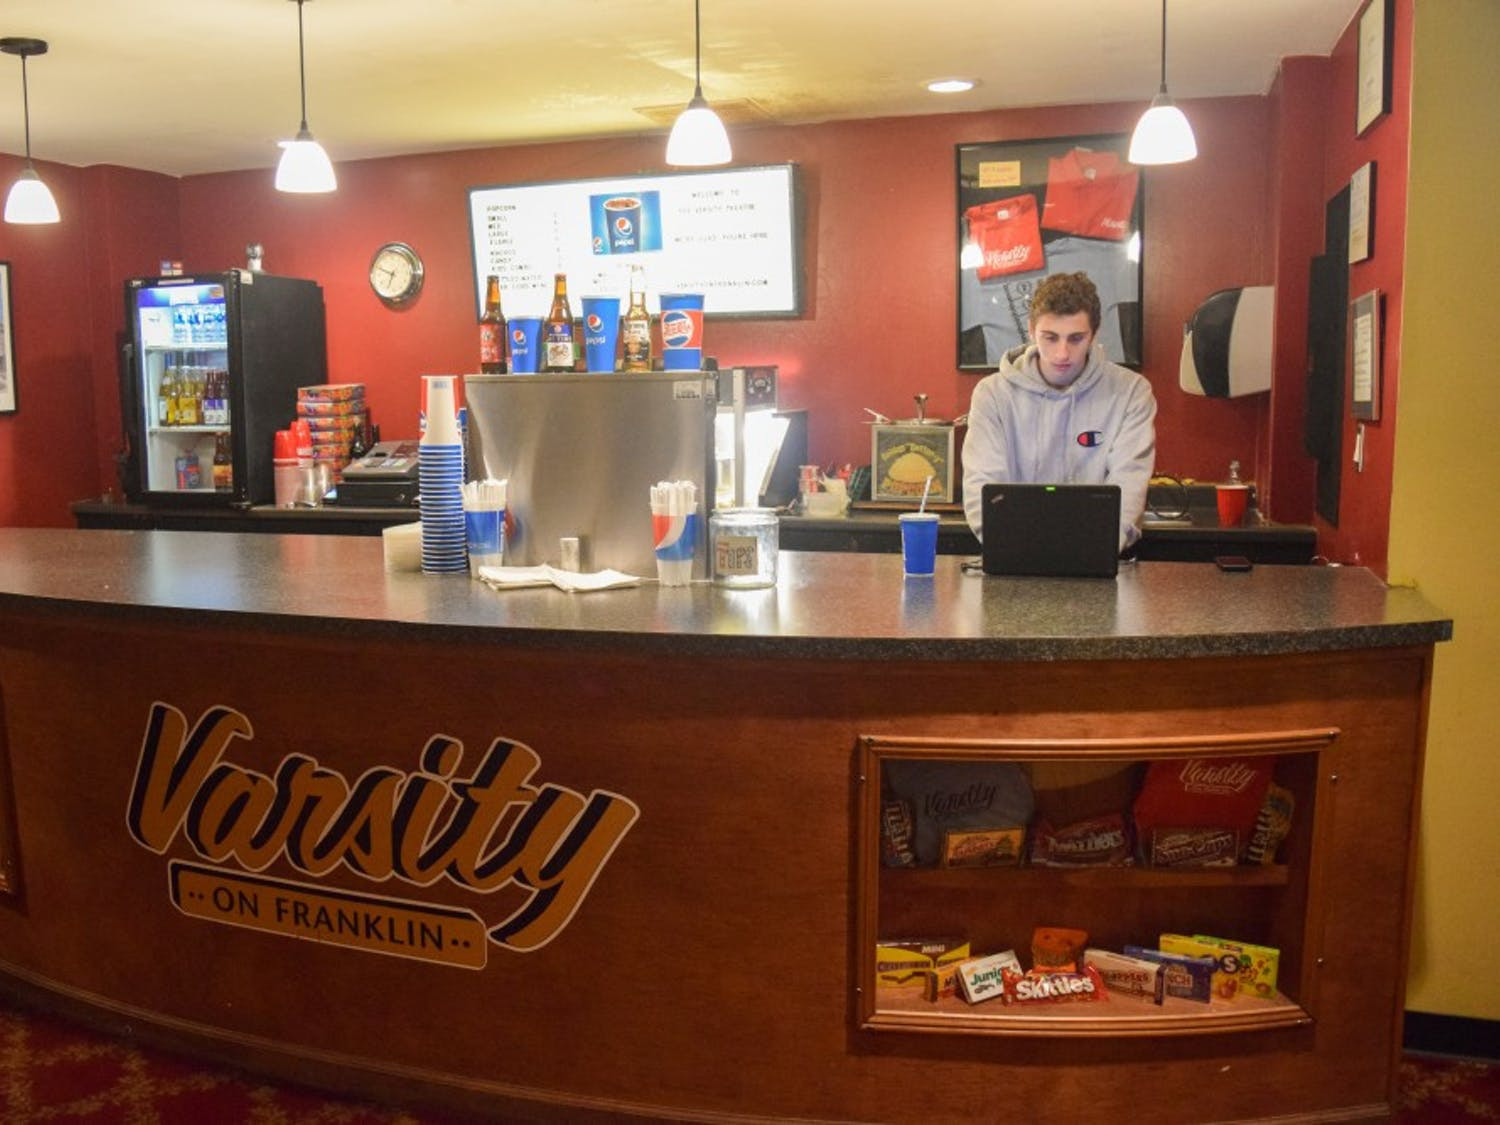 Jack Shareshian, a Chapel Hi;; High School Senior, runs the concession stand at the Varsity Theater on Franklin. The Varsity Theater Task force is looking to use the historic building as a space for performing arts.